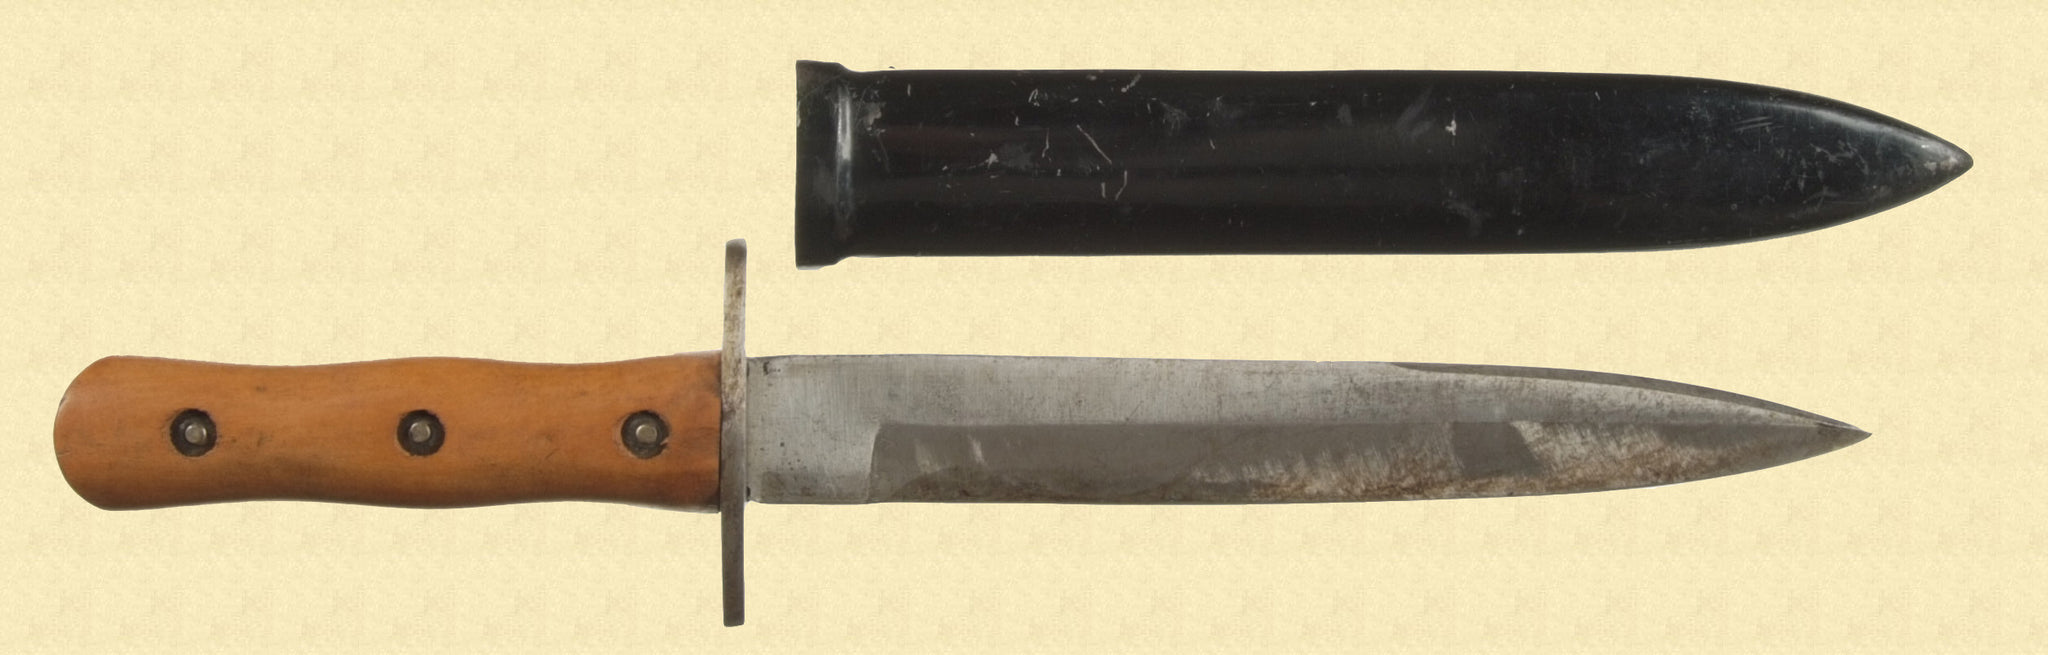 GERMAN WW2 NAVY KNIFE